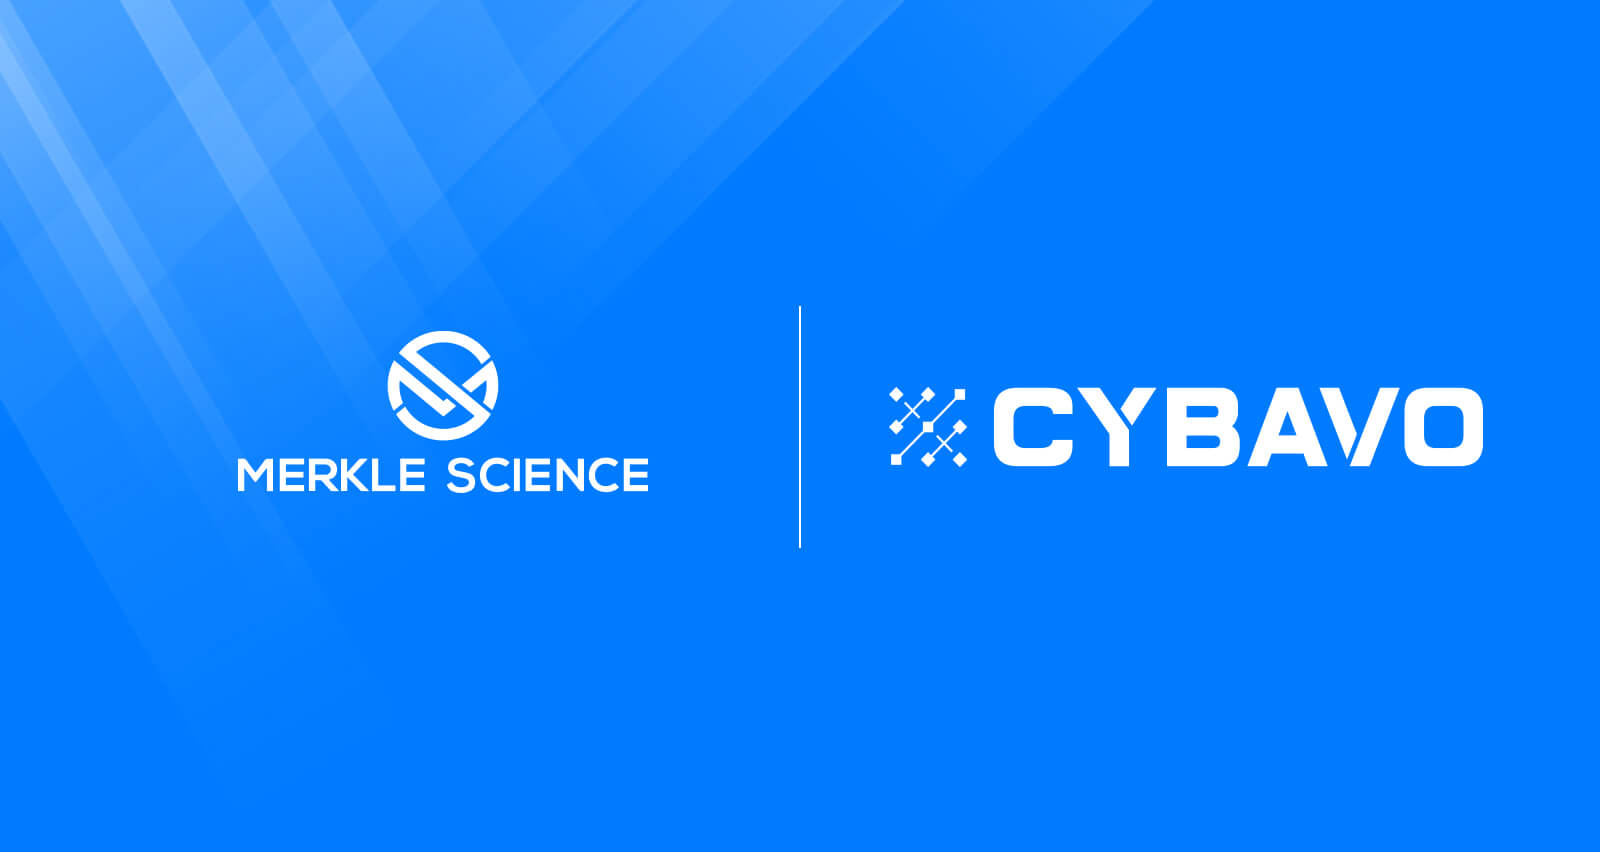 Merkle Science and CYBAVO partner to protect VASPs against money laundering